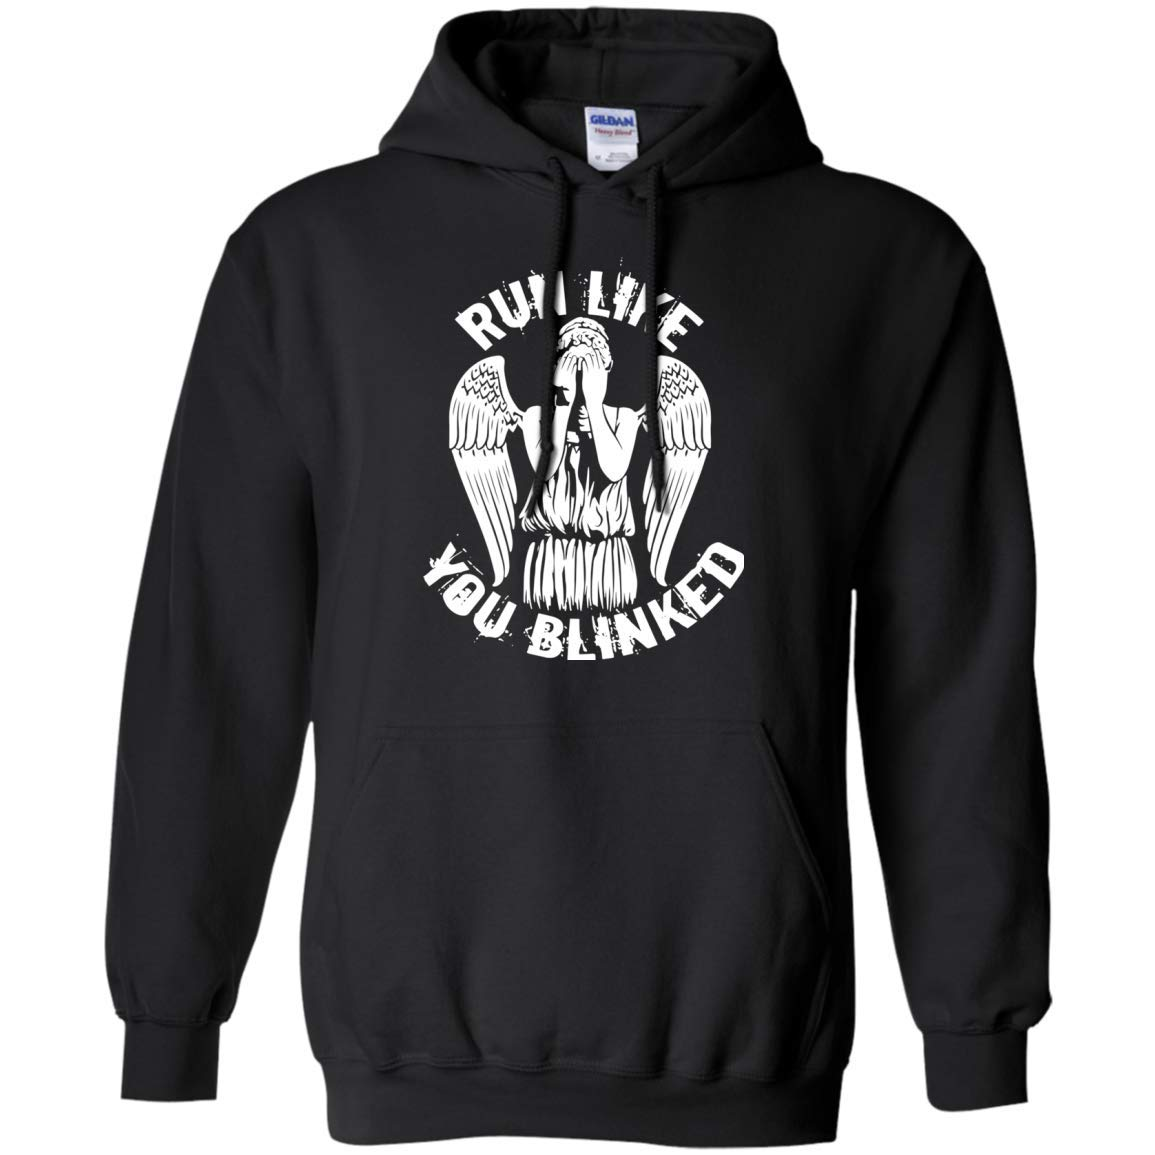 Funny Dr. Who Pullover Hoodie -Run Like You Blink Doctor Who T-Shirt Mens Womens Youth